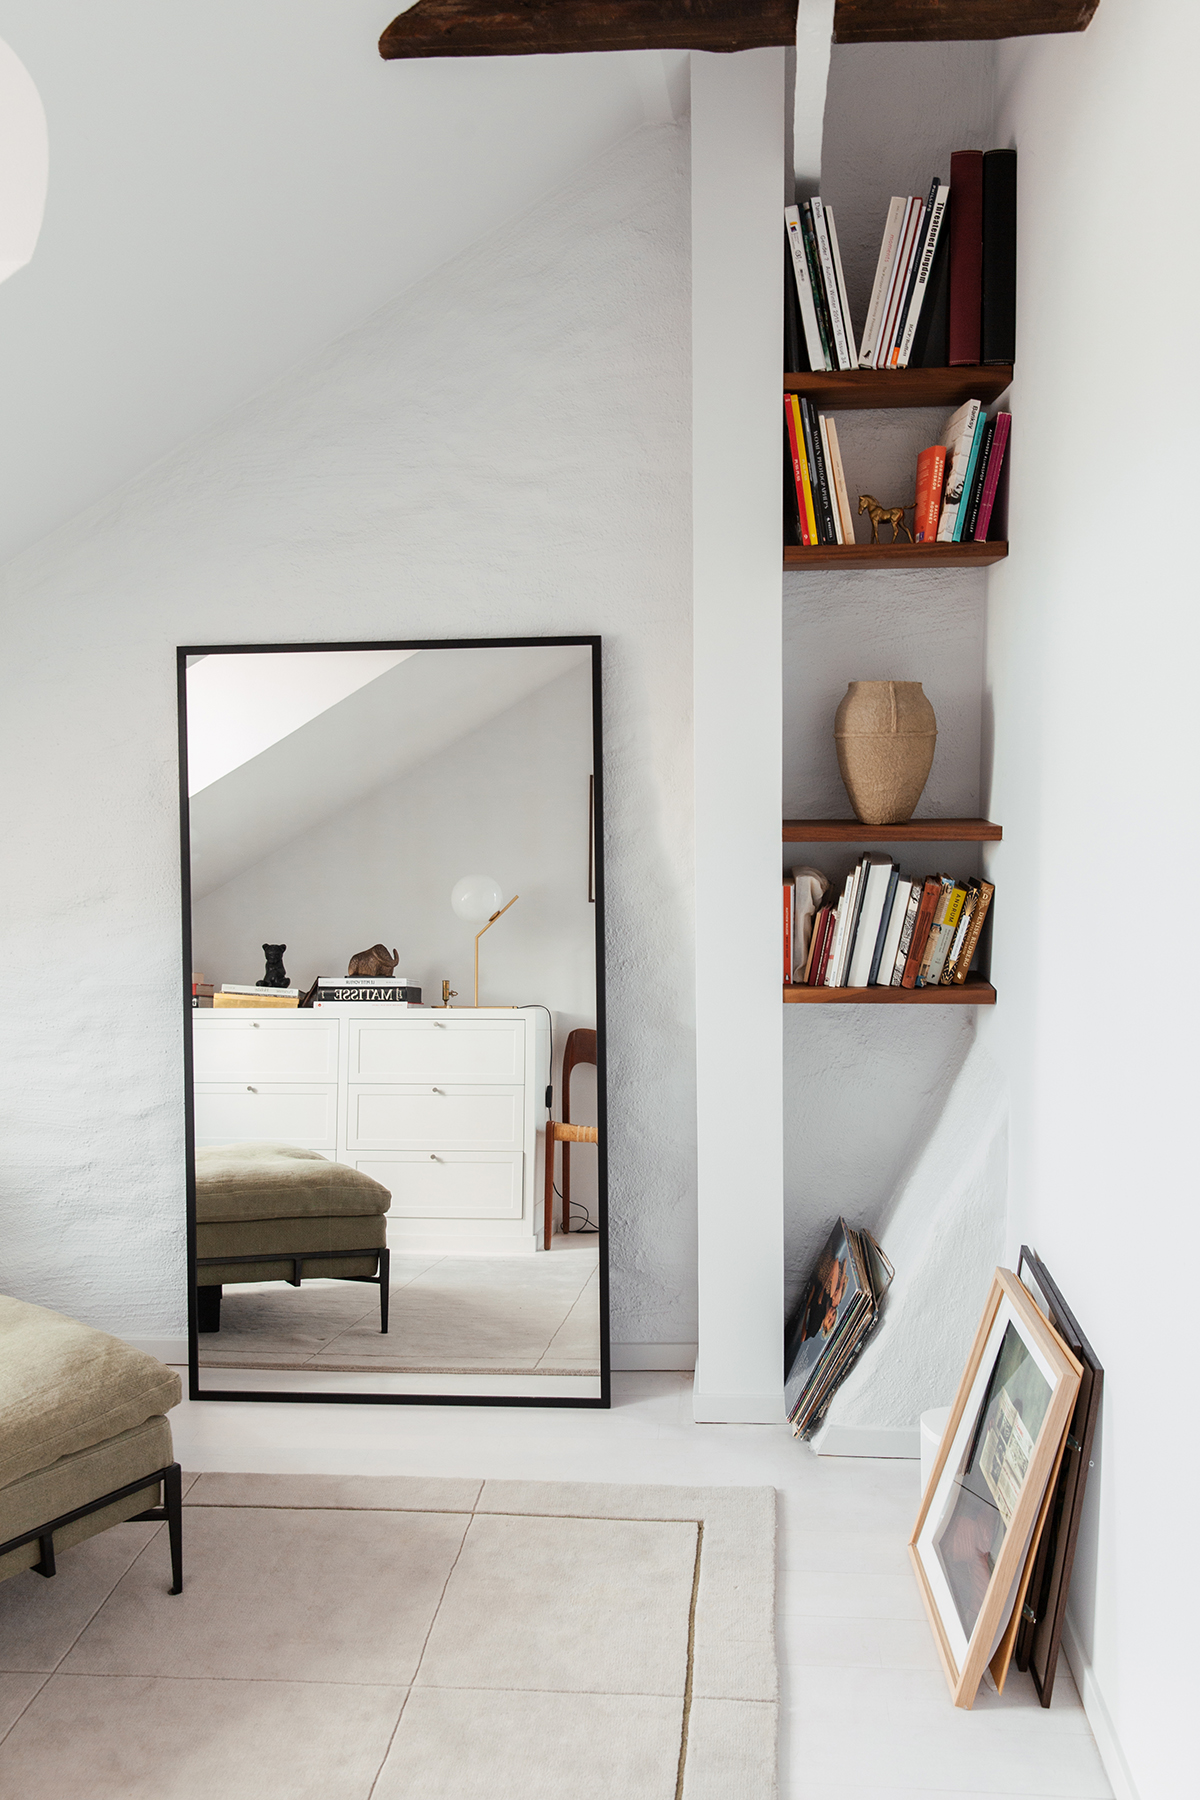 The AML 02 rug in Oatmeal and Green shown in a bright, modern apartment with a mirror and a bookcase.